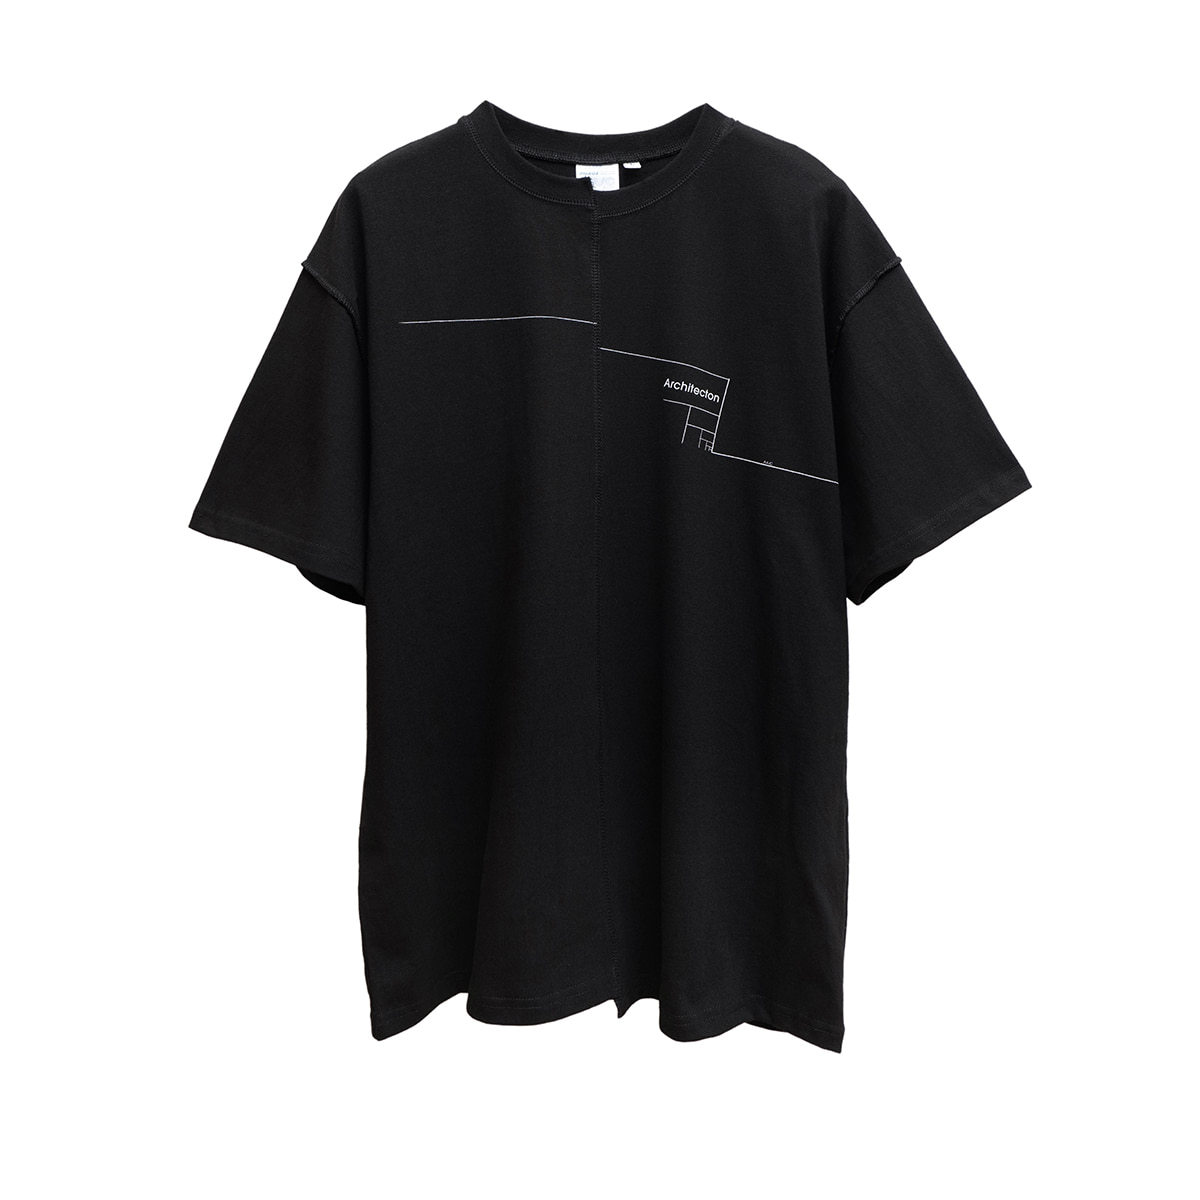 Distorted Architecton T-shirt (black)